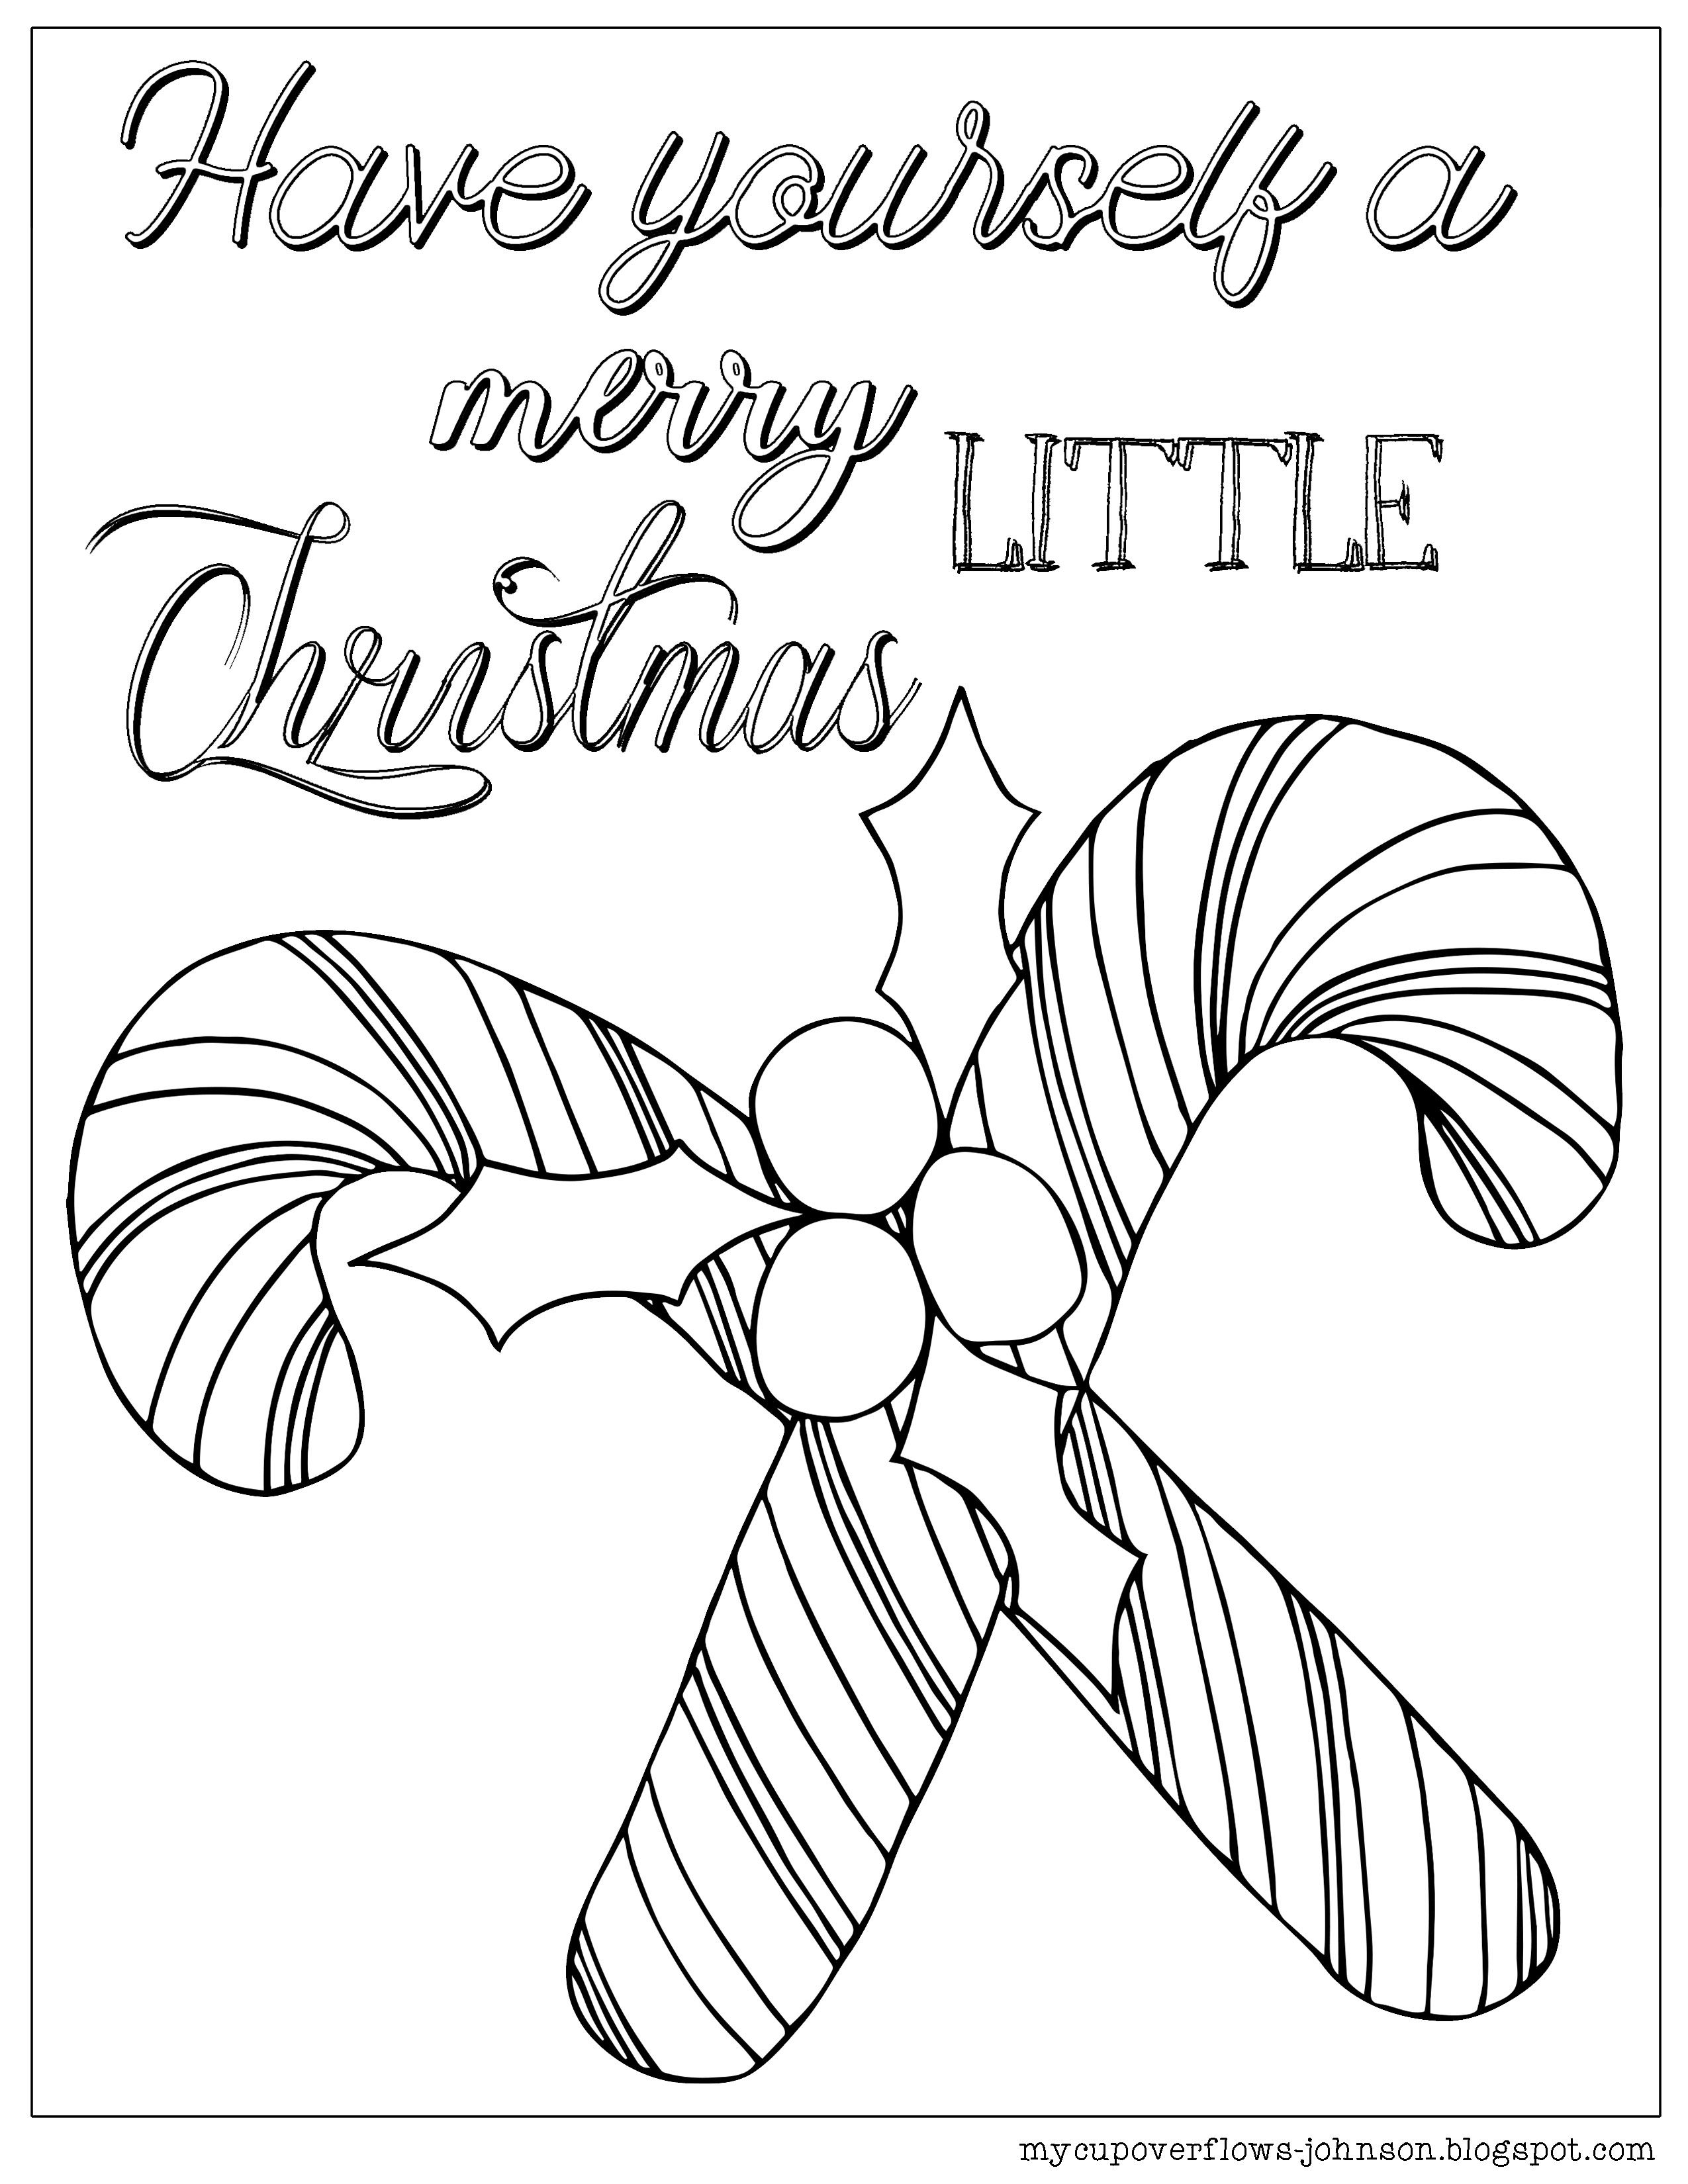 Candy Cane coloring sheet | Bible Coloring Pages and more ...